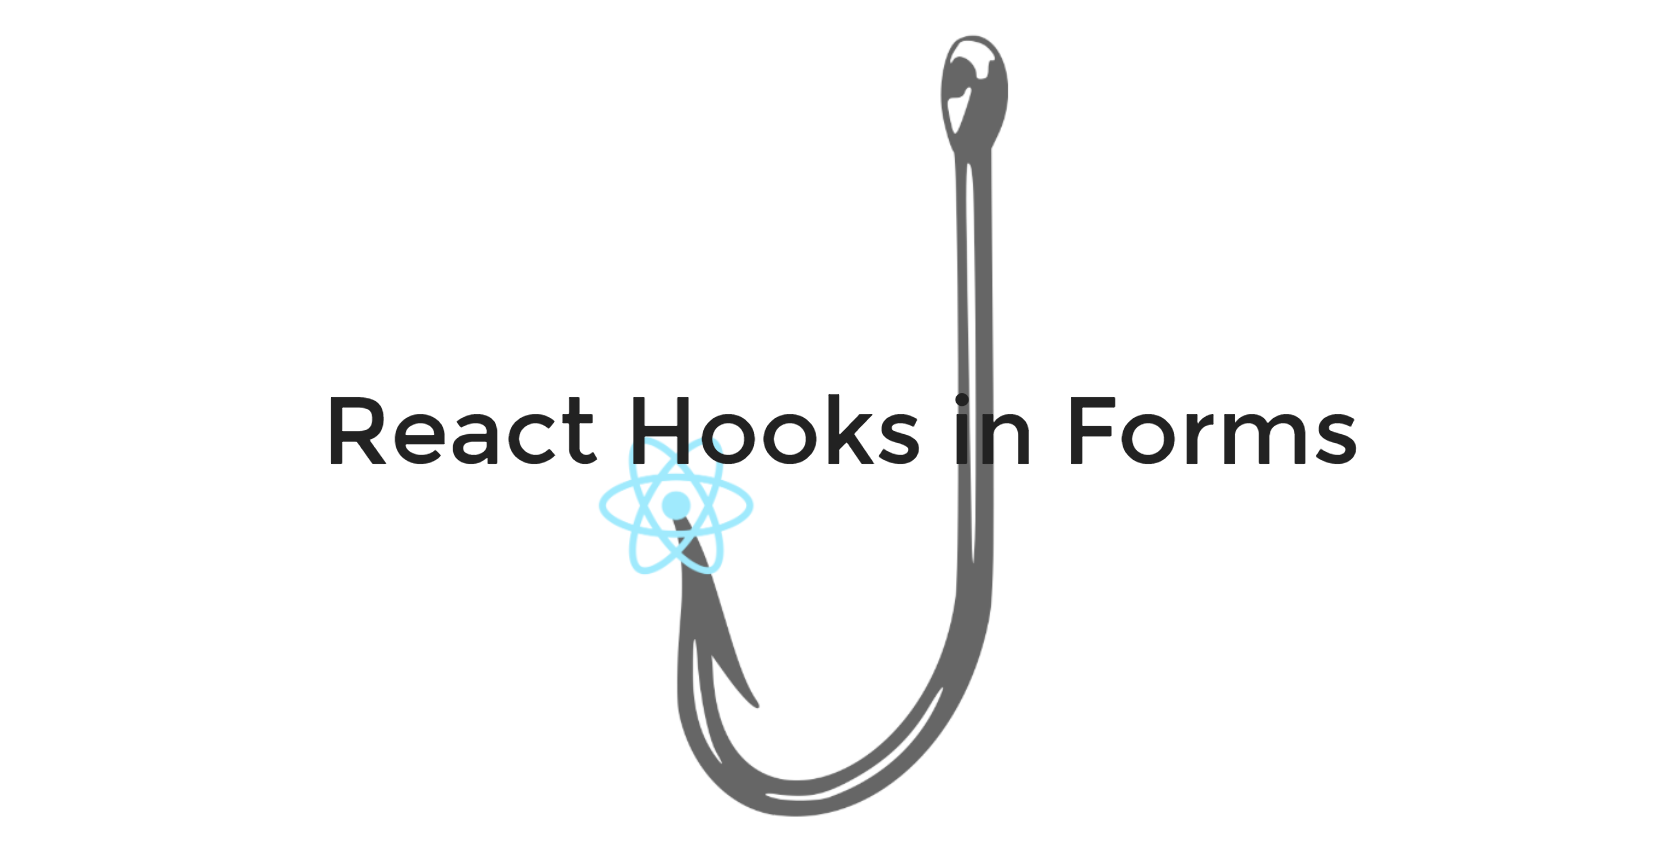 Using React Hooks To Create Awesome Forms - Rajat S - Medium